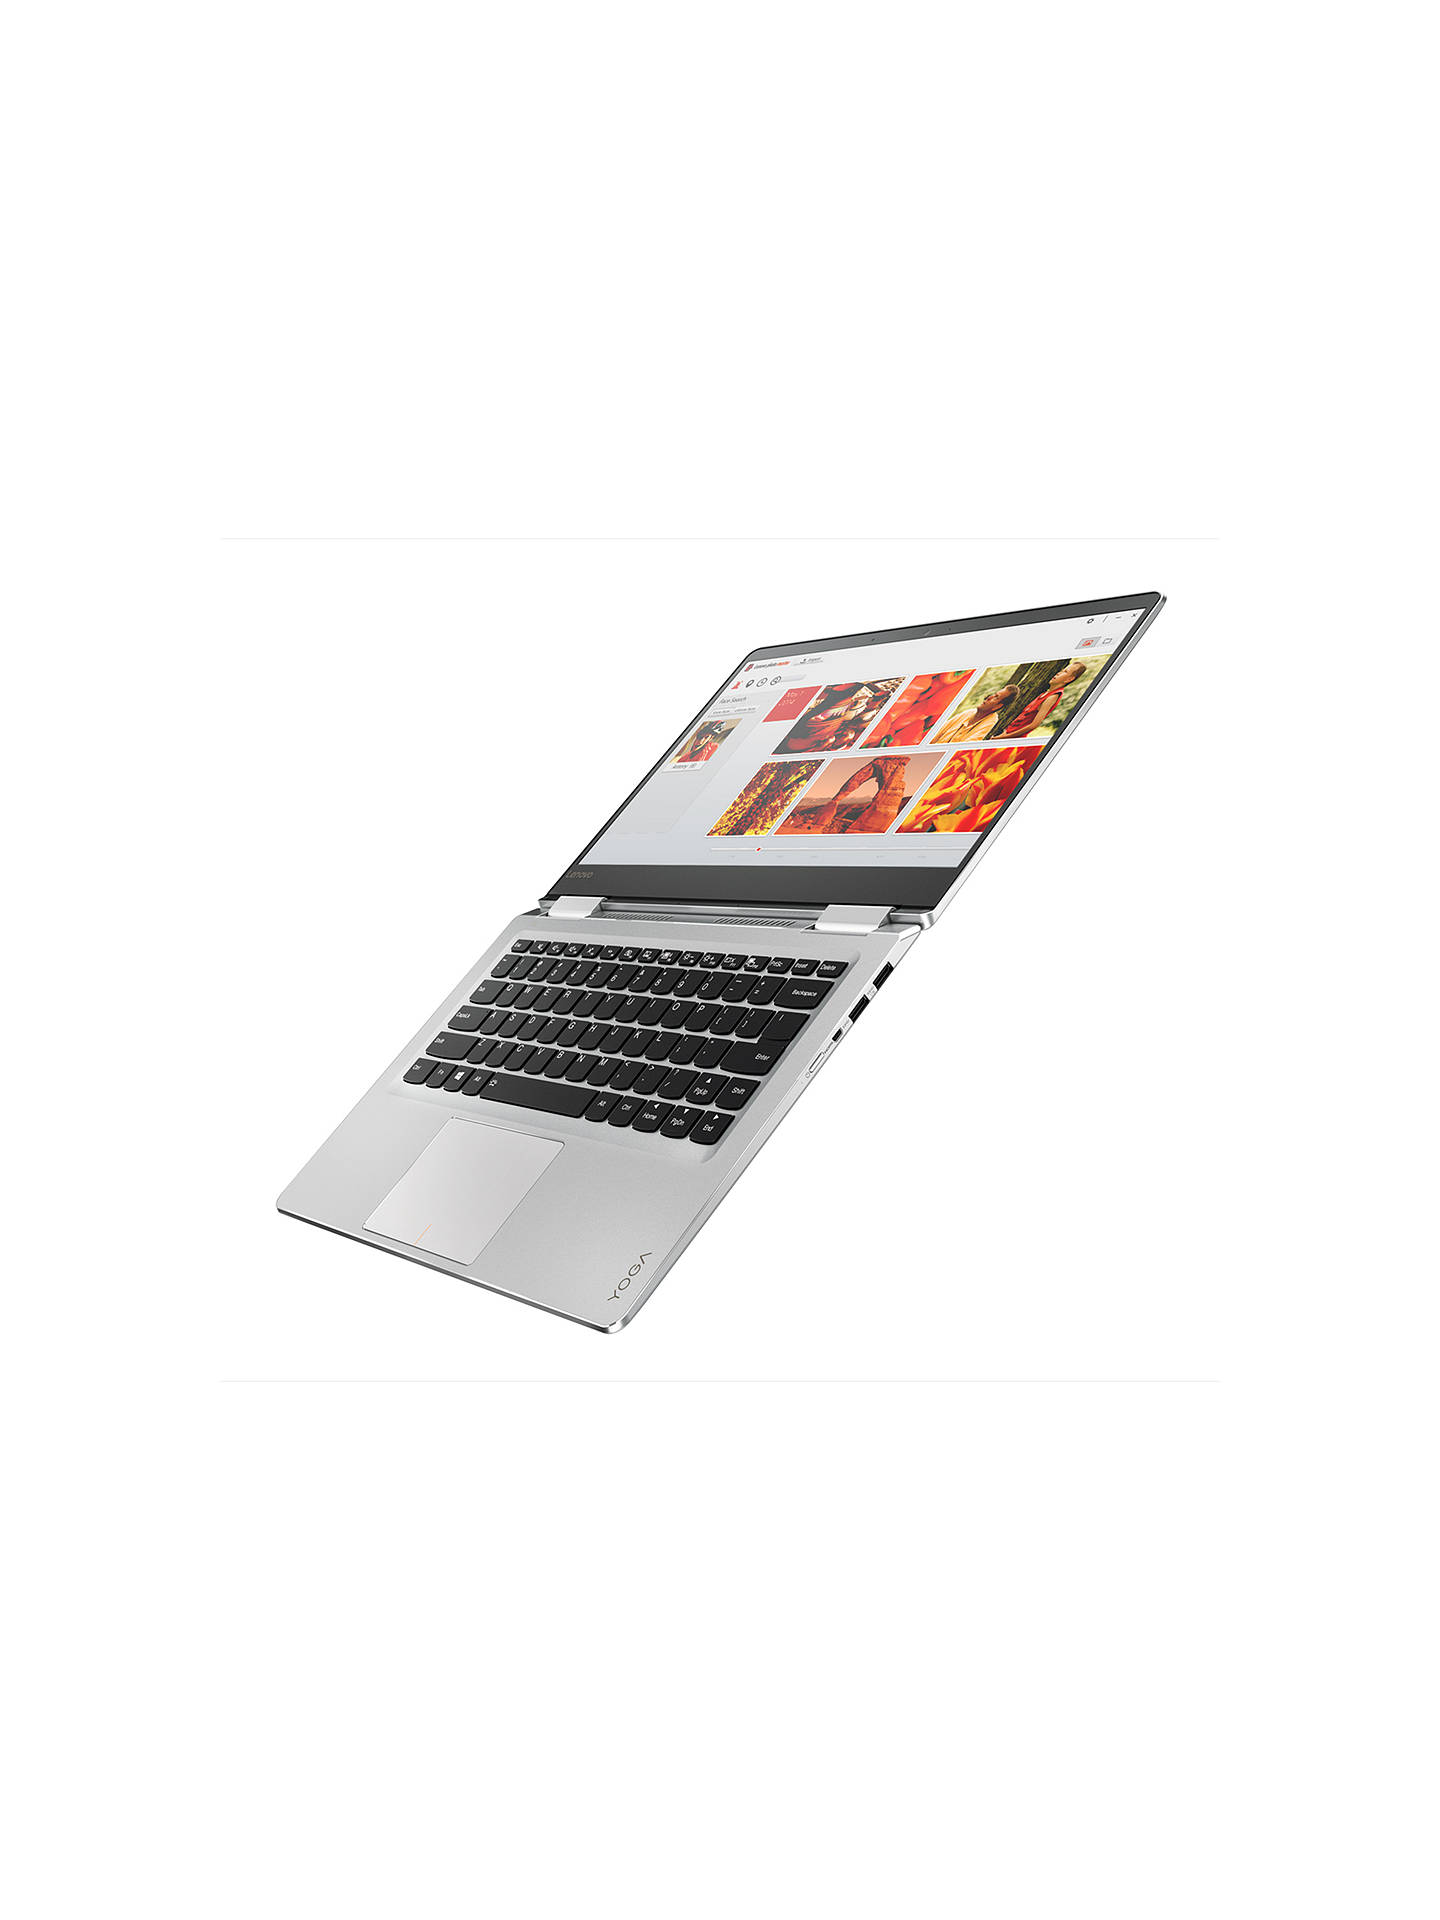 Lenovo Yoga 710 Convertible Laptop, Intel Core i7, 8GB RAM